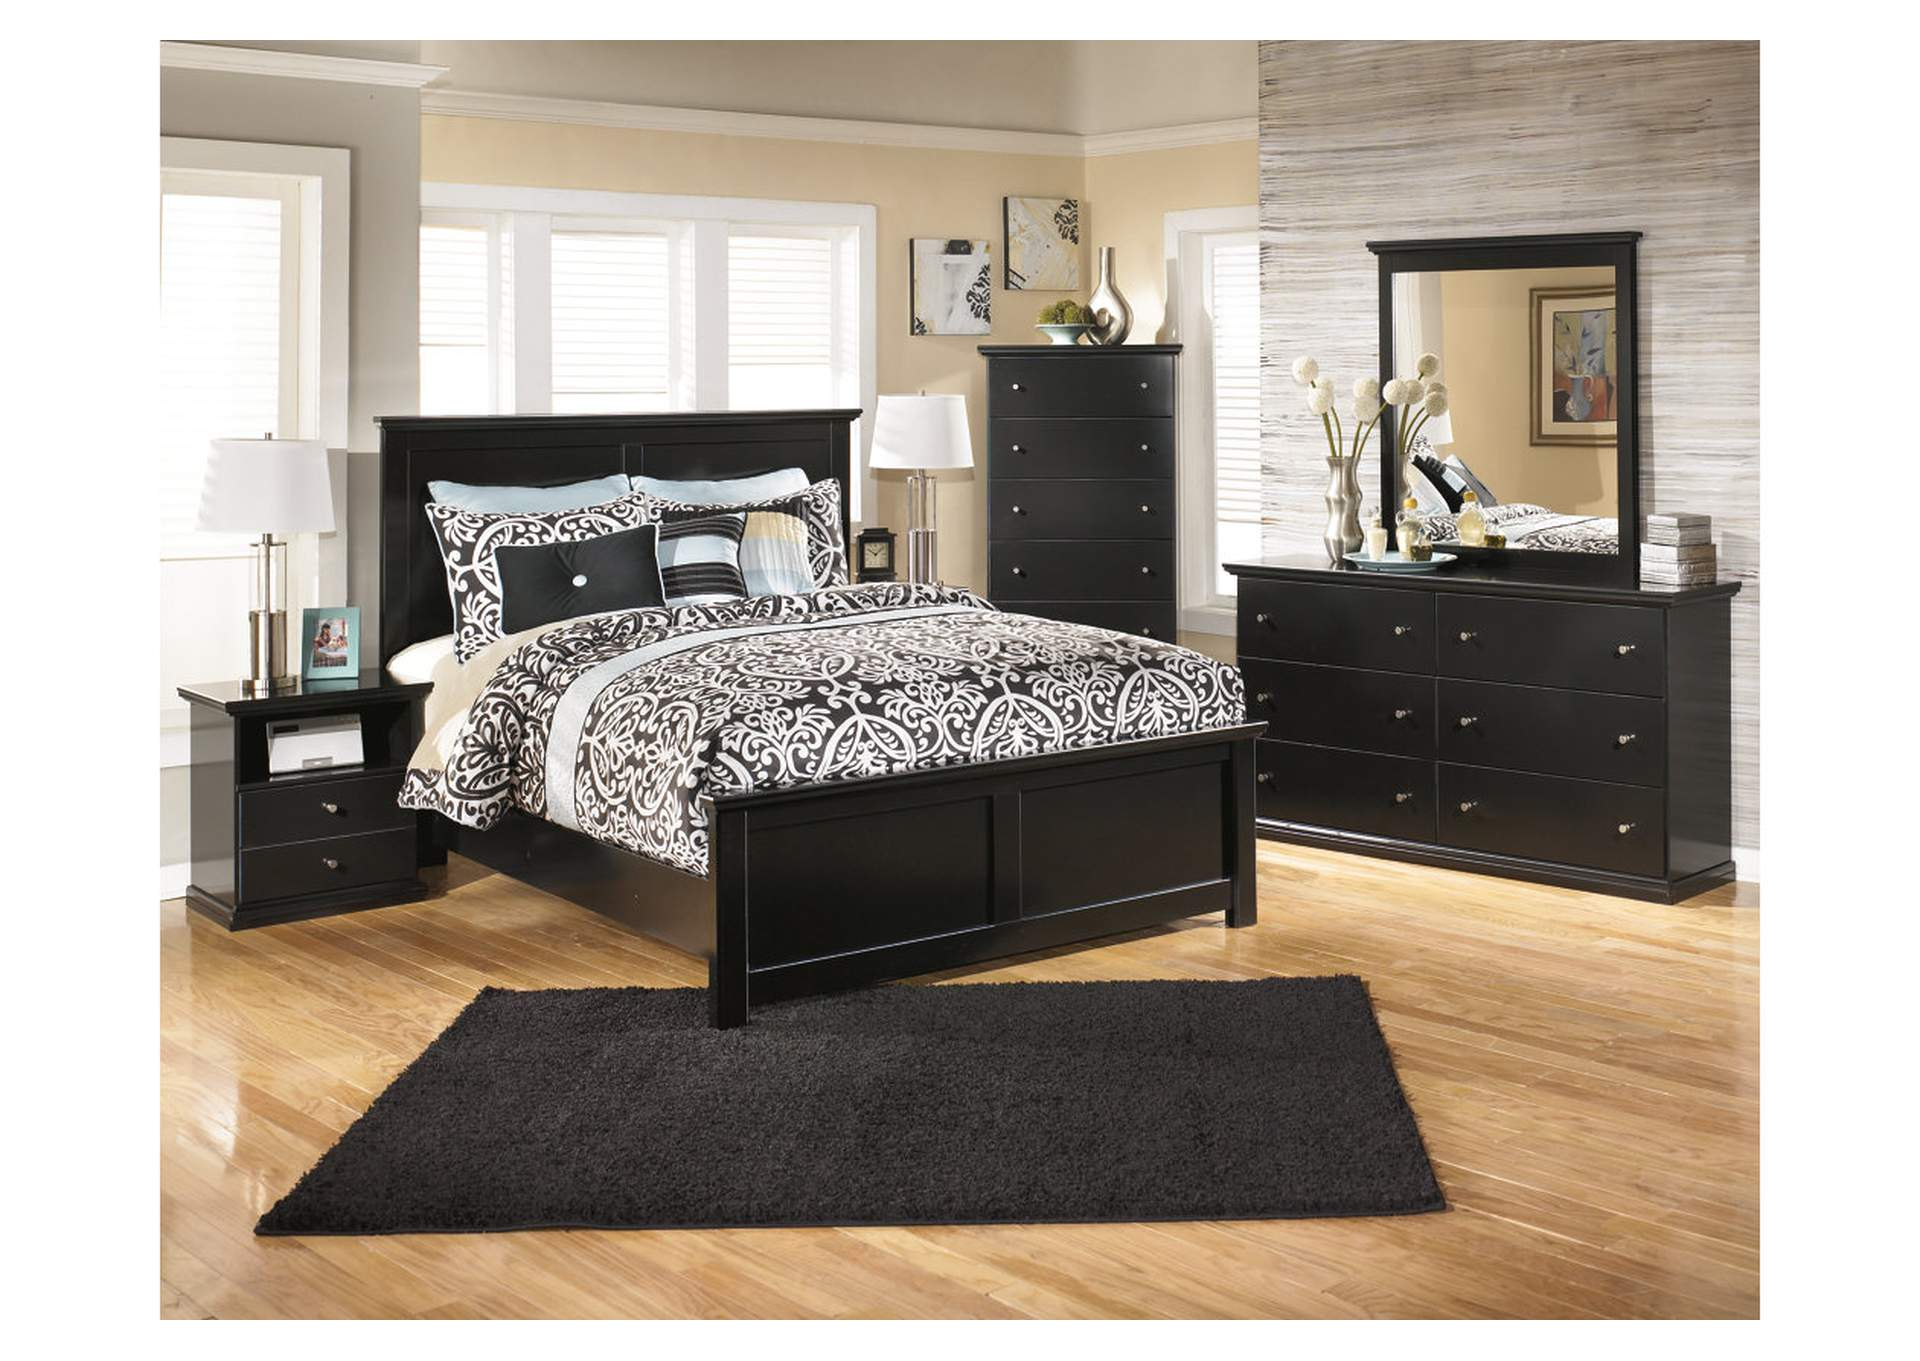 Maribel King Panel Bed w/Dresser & Mirror,Signature Design By Ashley